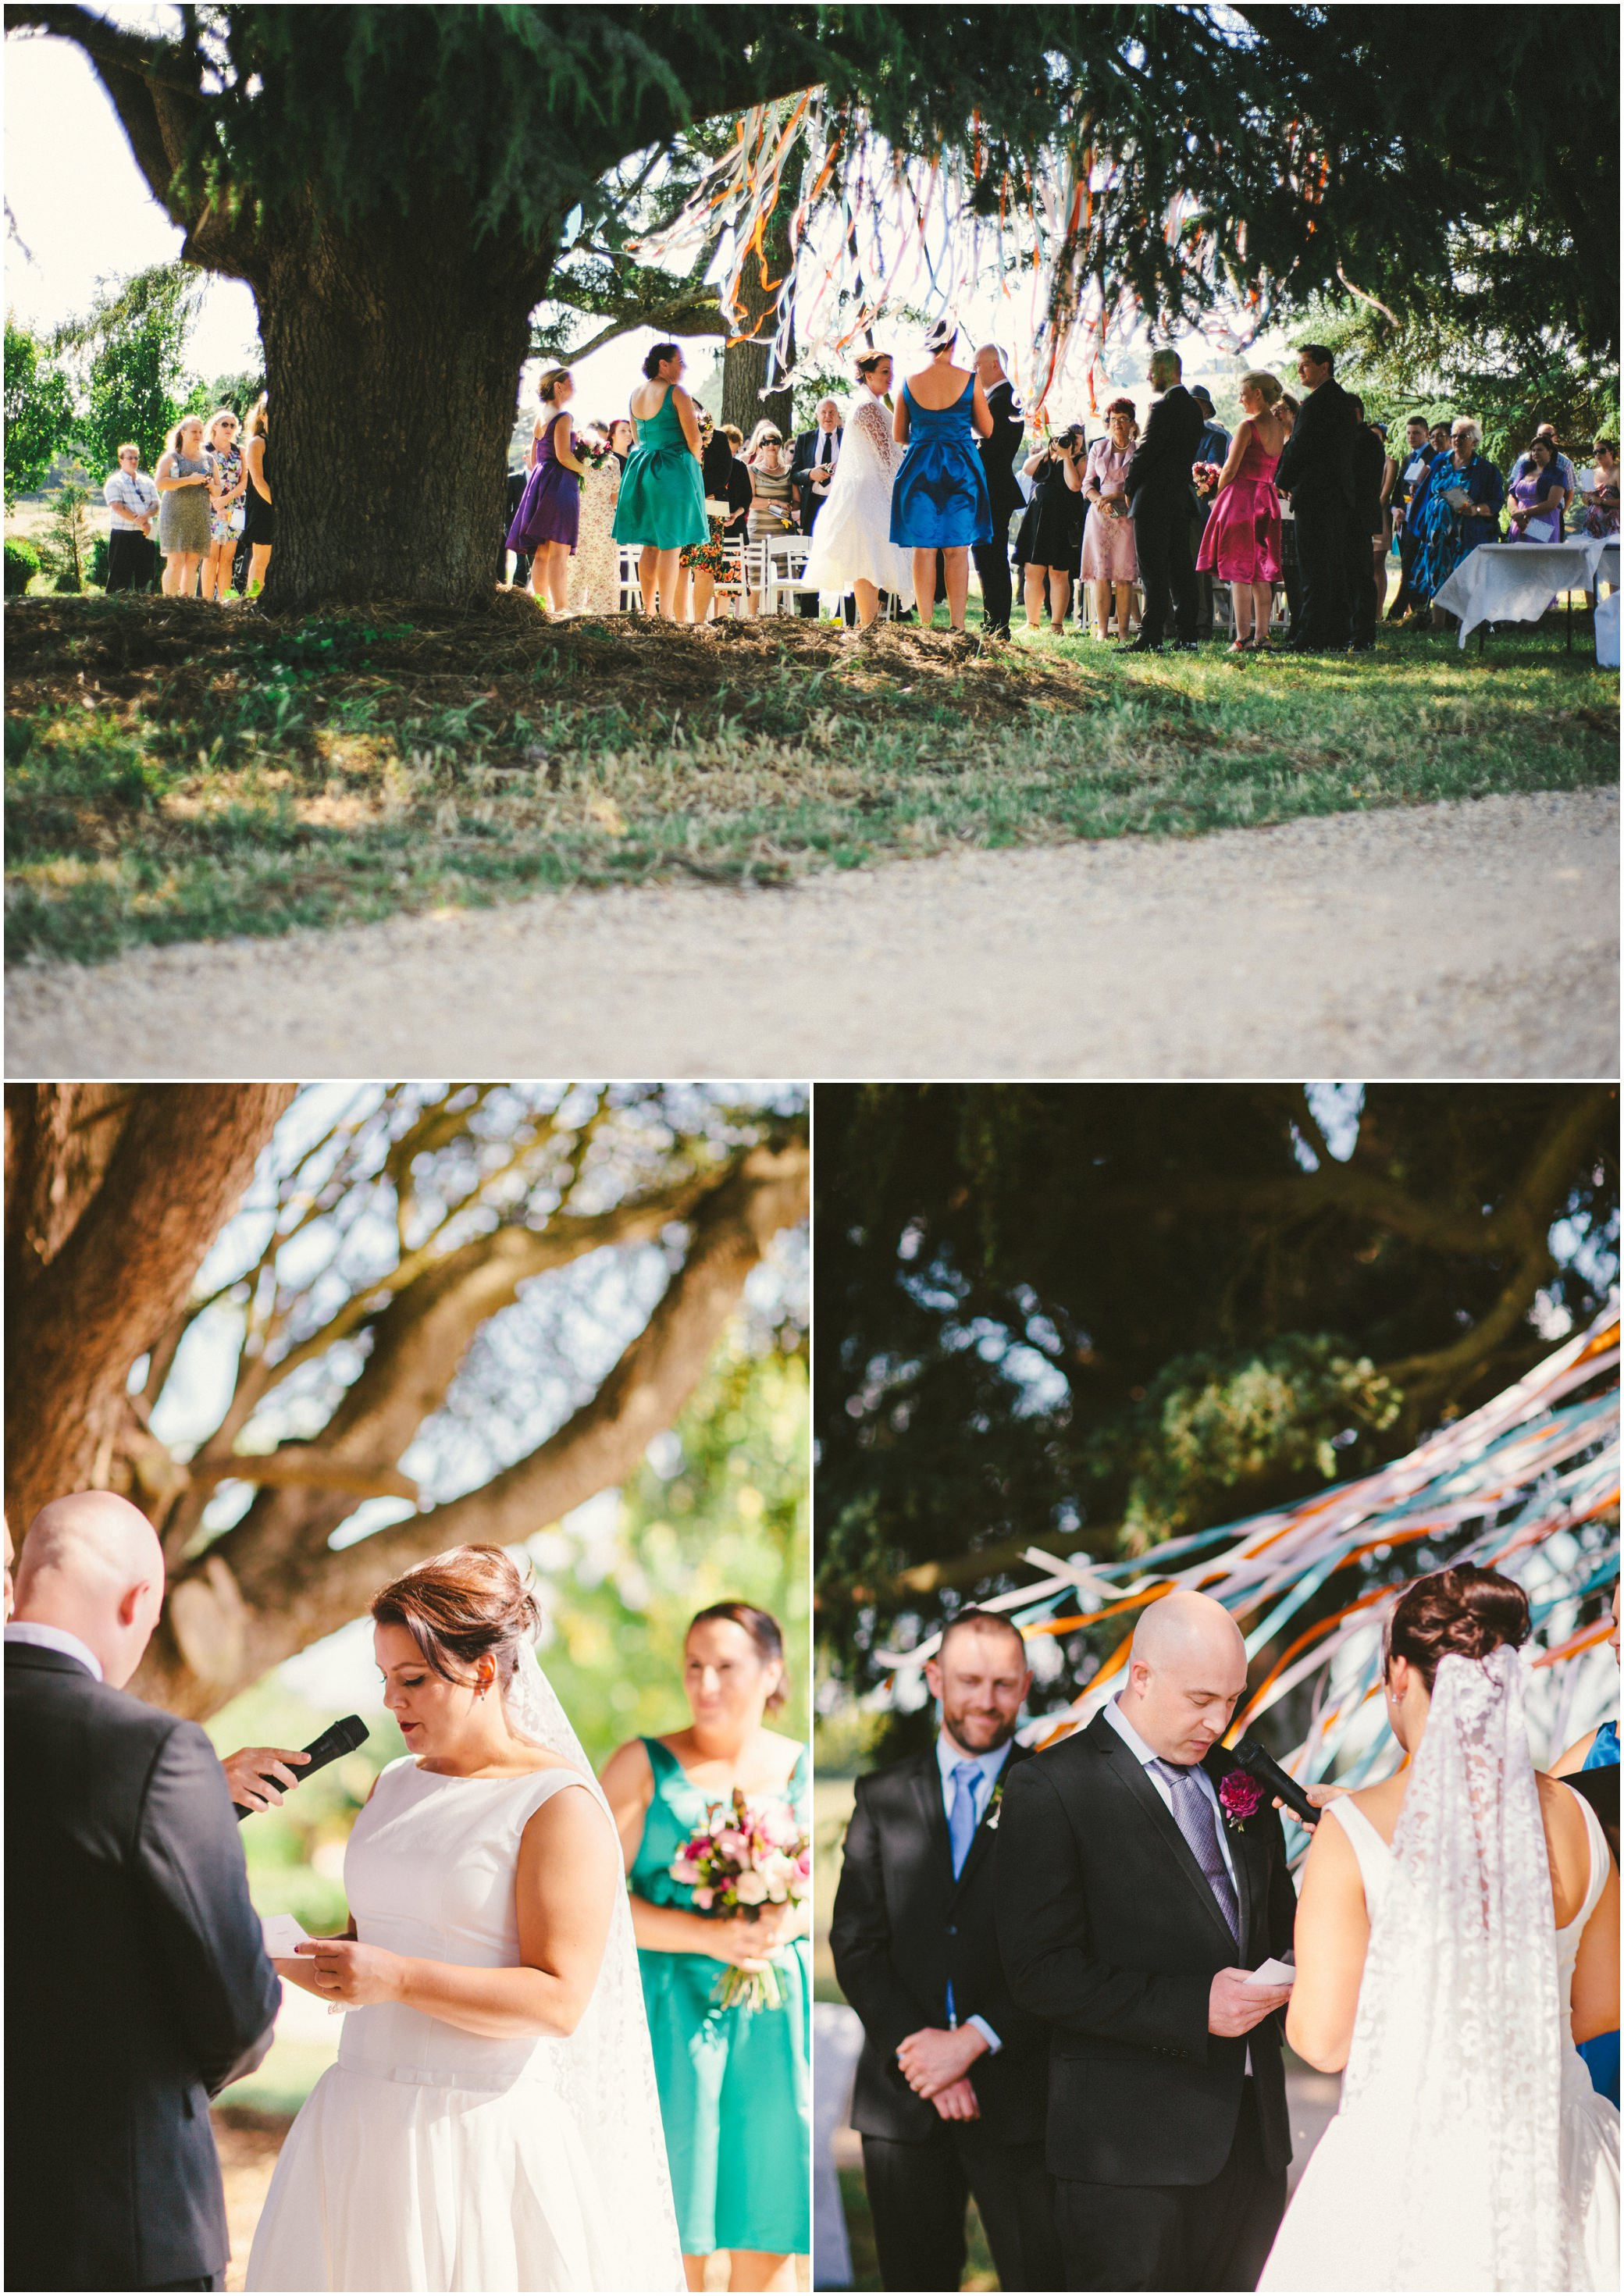 Melbourne wedding photographer aghadoe estate country victorian wedding DIY wedding pomp and splendour flowers hyggelig photography melbourne wedding photographer35